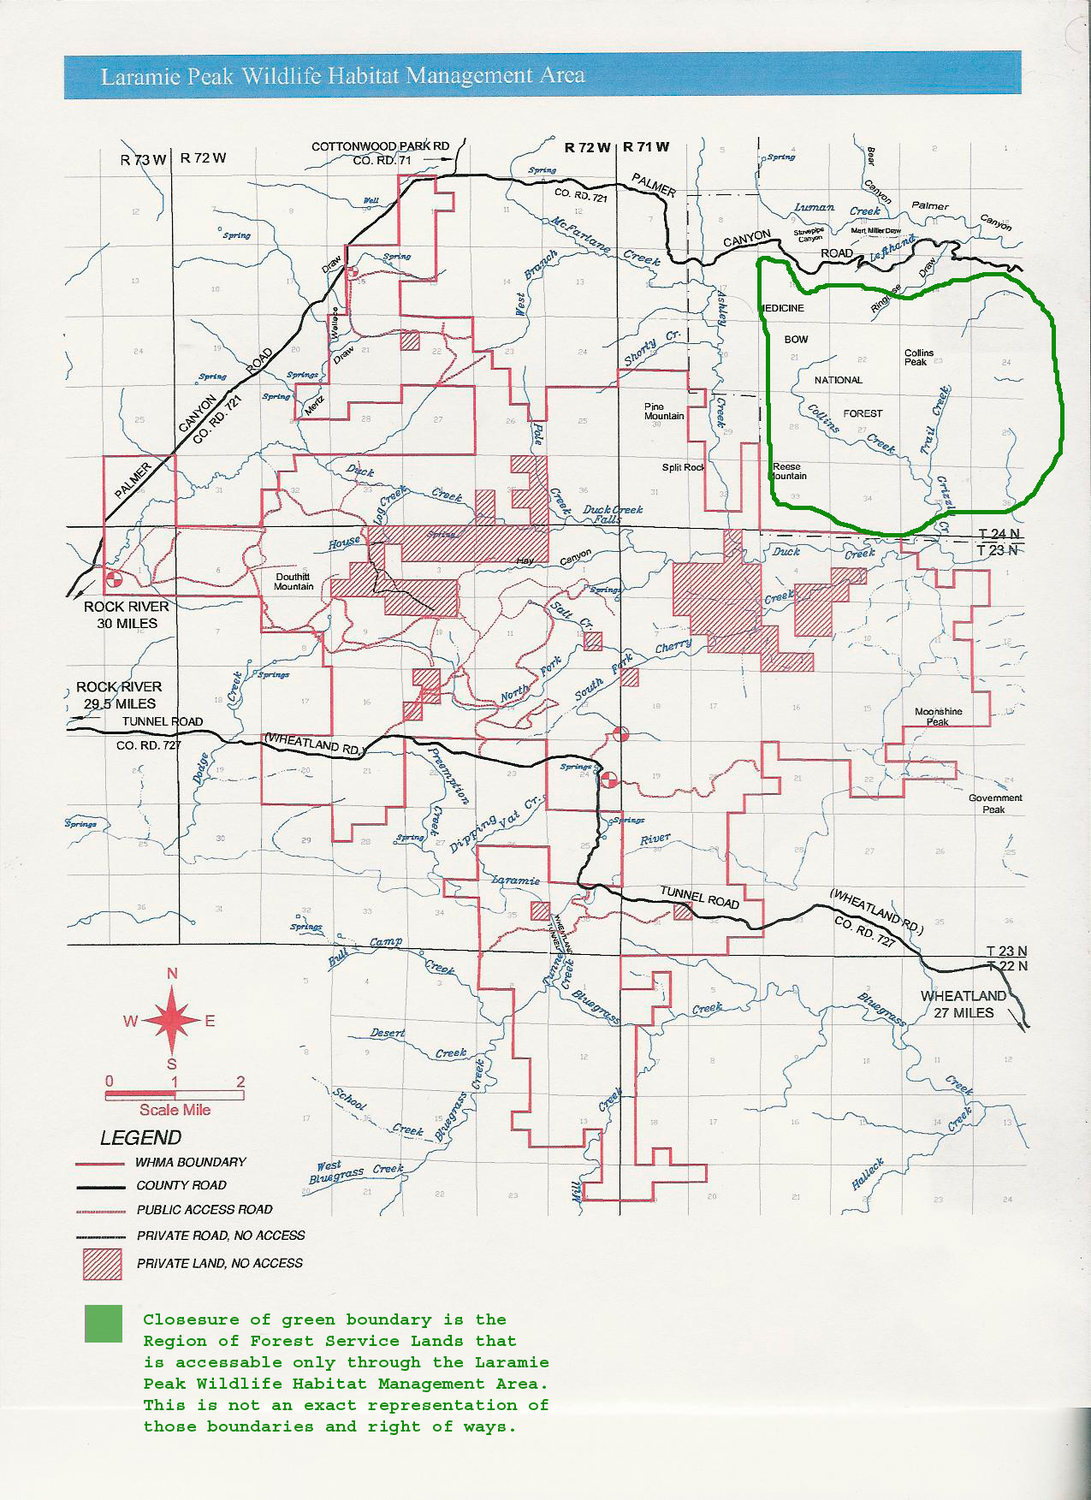 Game and Fish Map [modified] for Laramie Peak Wildlife Habitat Management Area. Note